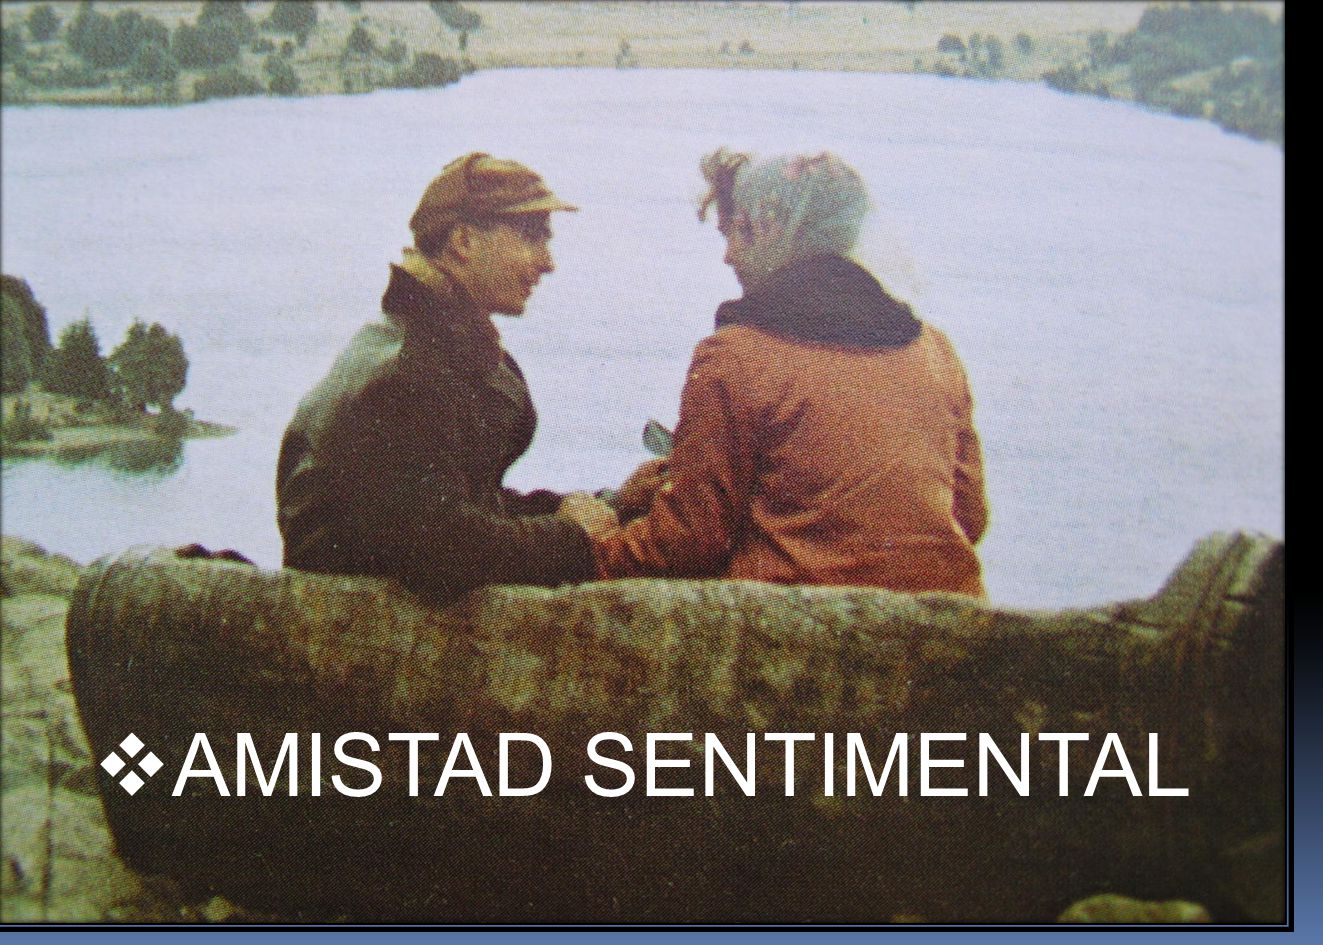 AMISTAD SENTIMENTAL